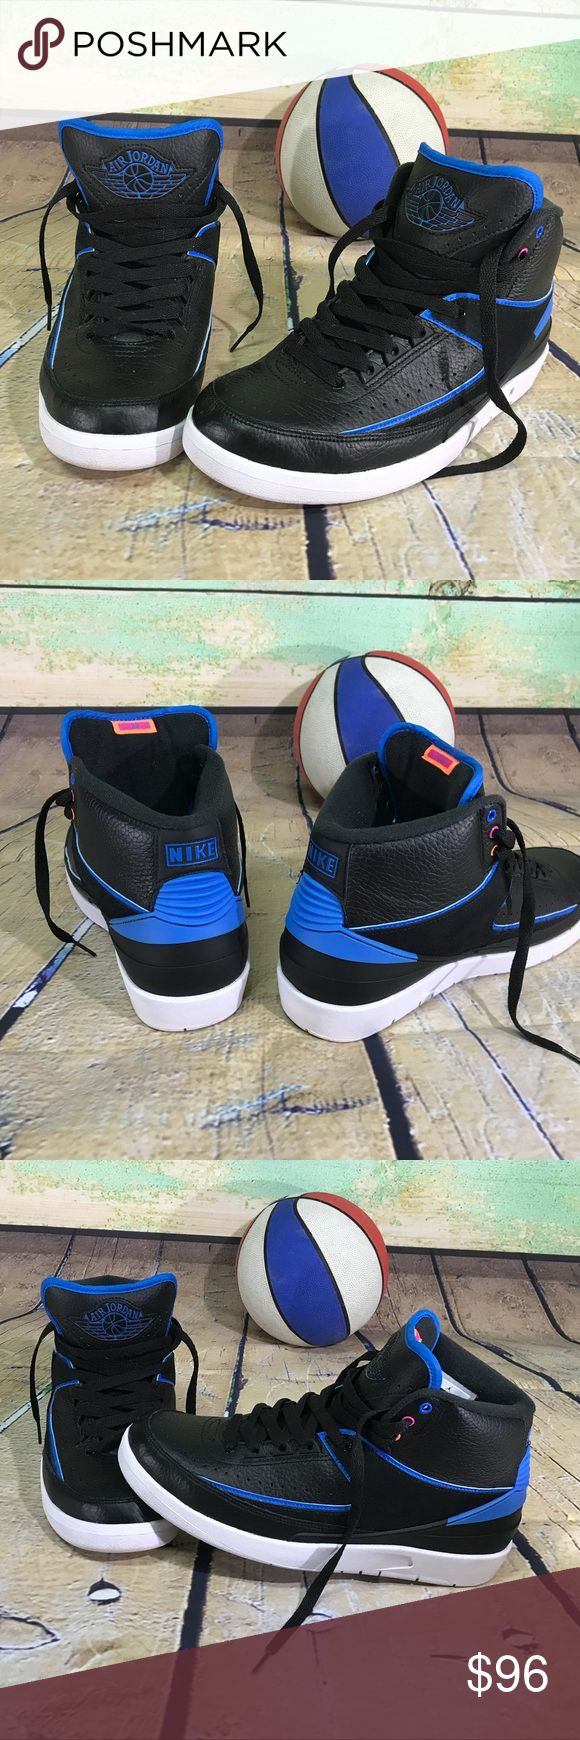 "Nike Air Jordan Retro 2 II Radio Raheem Size 8 NIKE Air Jordan Retro 2 II ""Radio Raheem"" Black - Photo Blue - White - Fire Pink model# 834274-014     Men's size 8 basketball shoes.   Excellent condition!  Minimal wear - court use only. Bottoms are clean. Sides are WHITE.  Minimal amount of pilling on the fabric inside at the heal and the insole.  Everything else about these shoes is immaculate.  Fresh! Jordan Shoes Athletic Shoes"